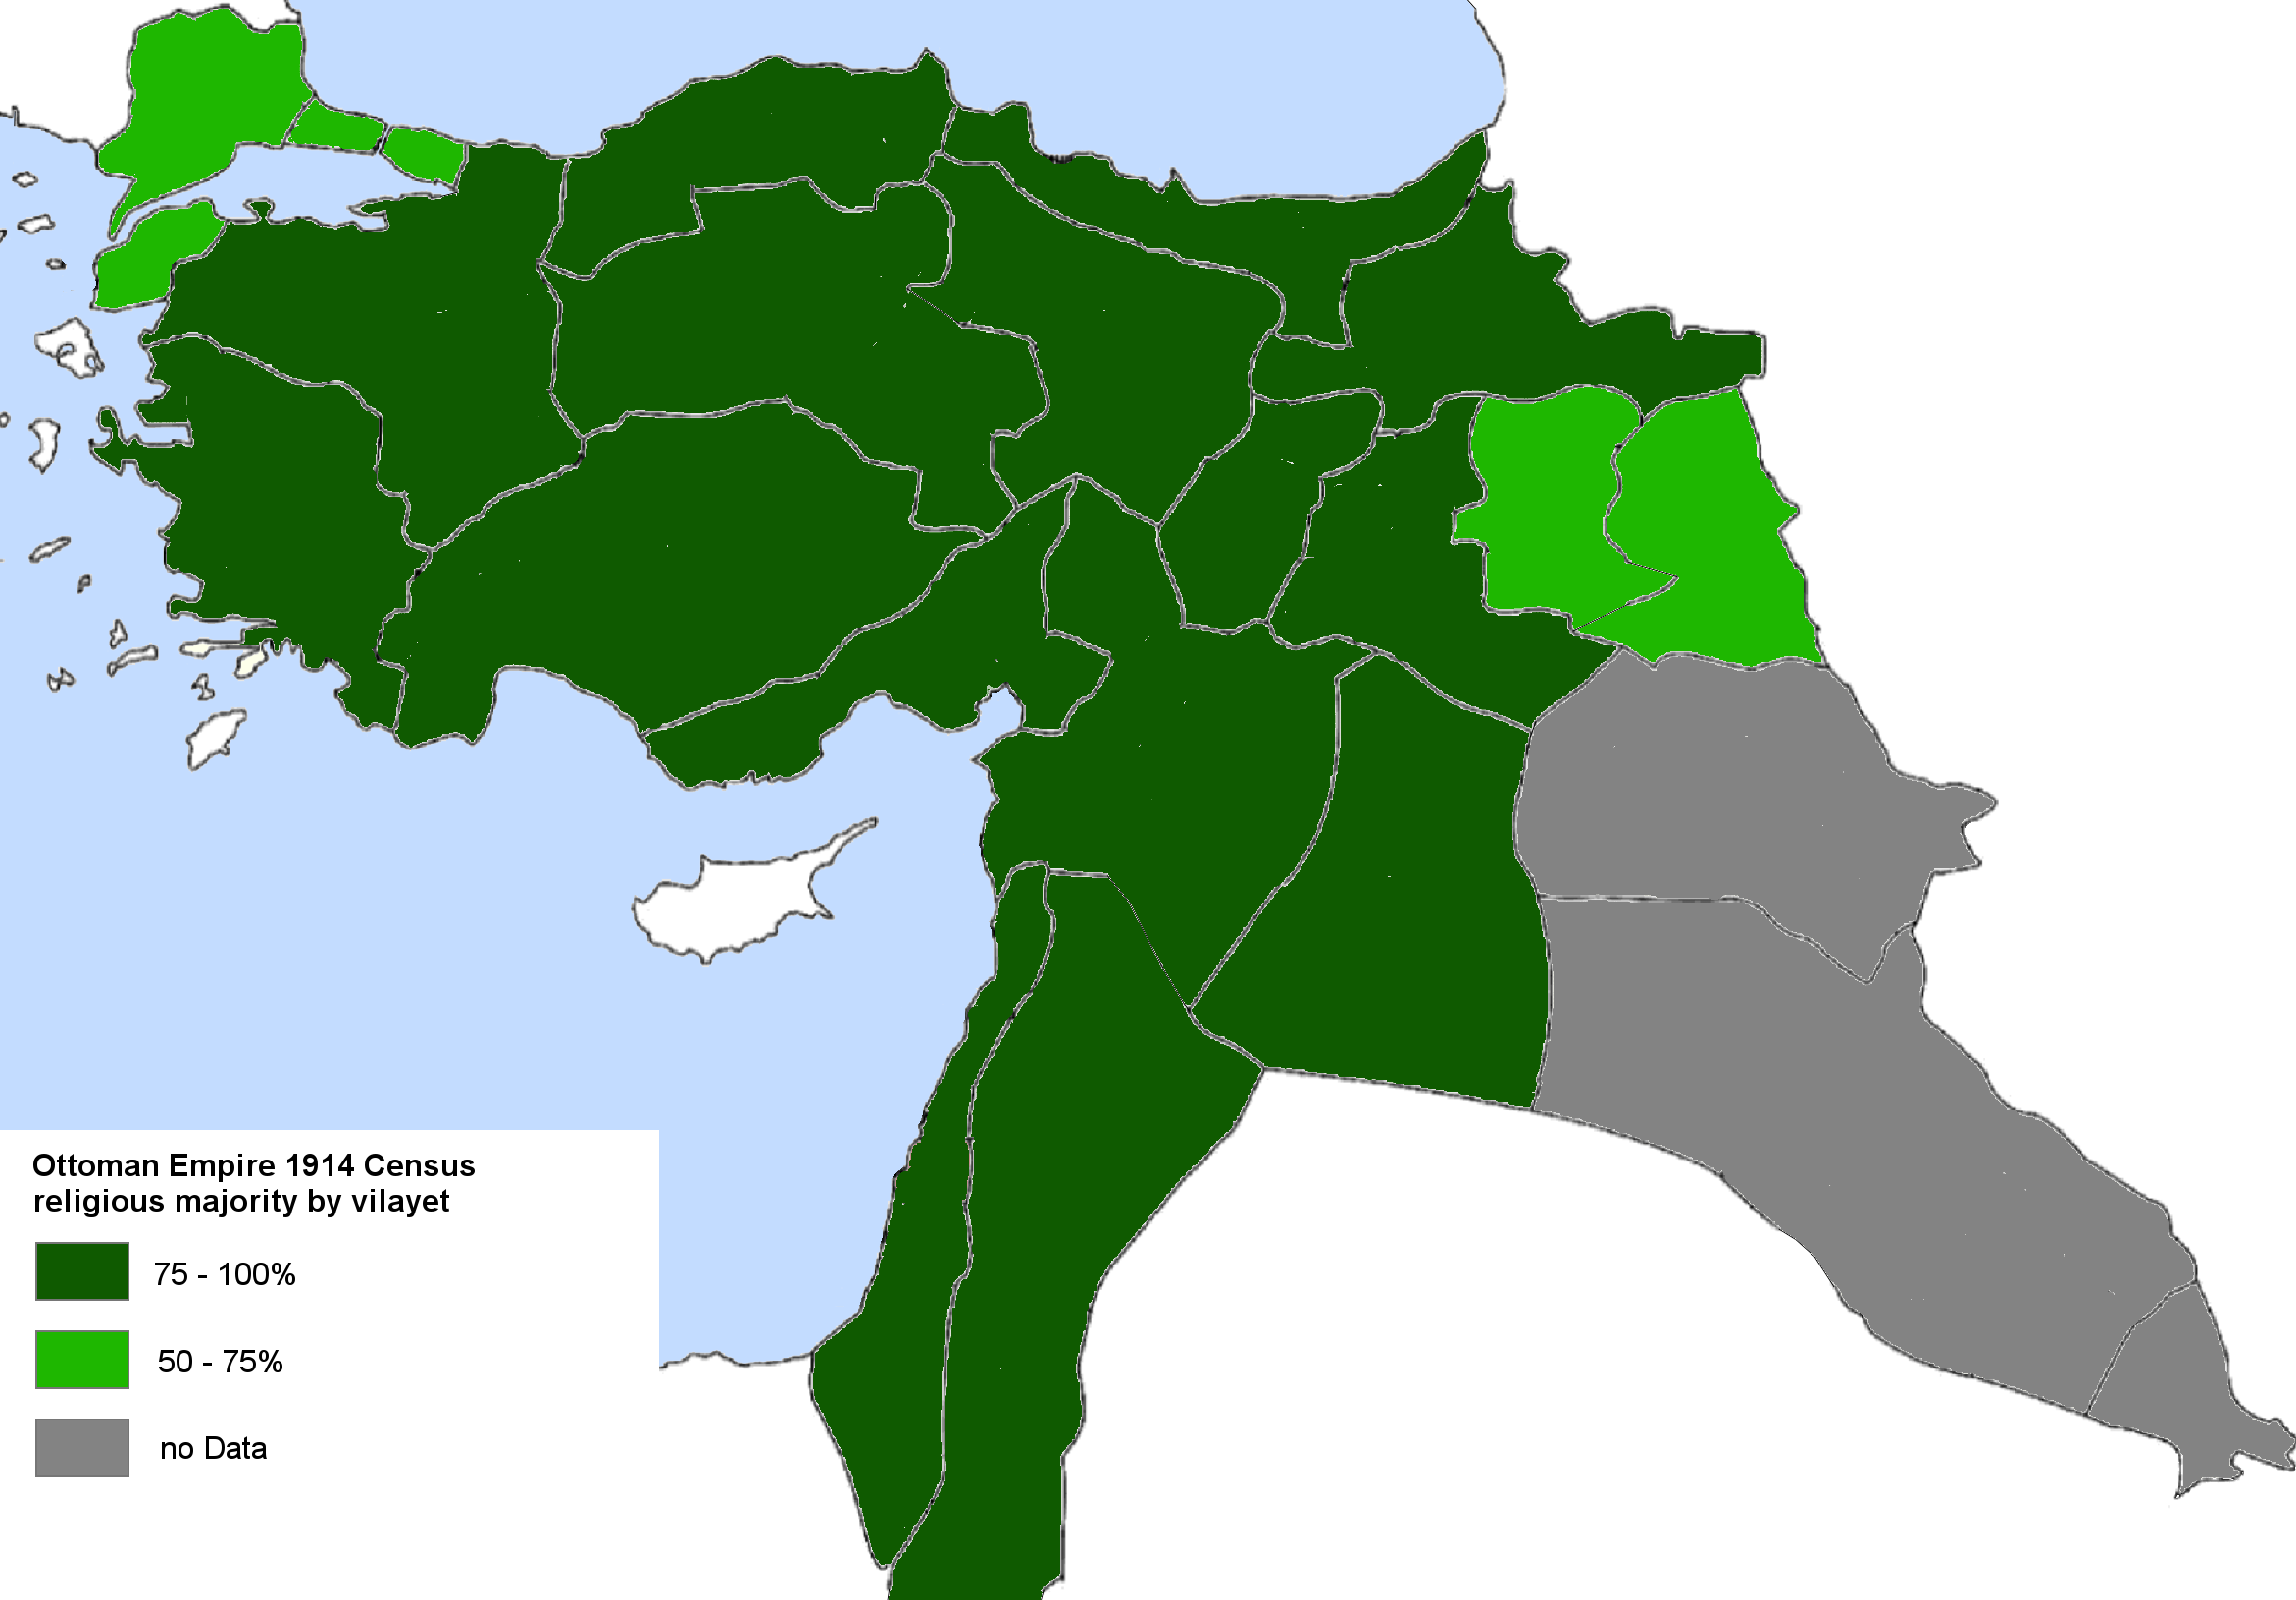 Ottoman Empire 1914 religious majority by vilayet